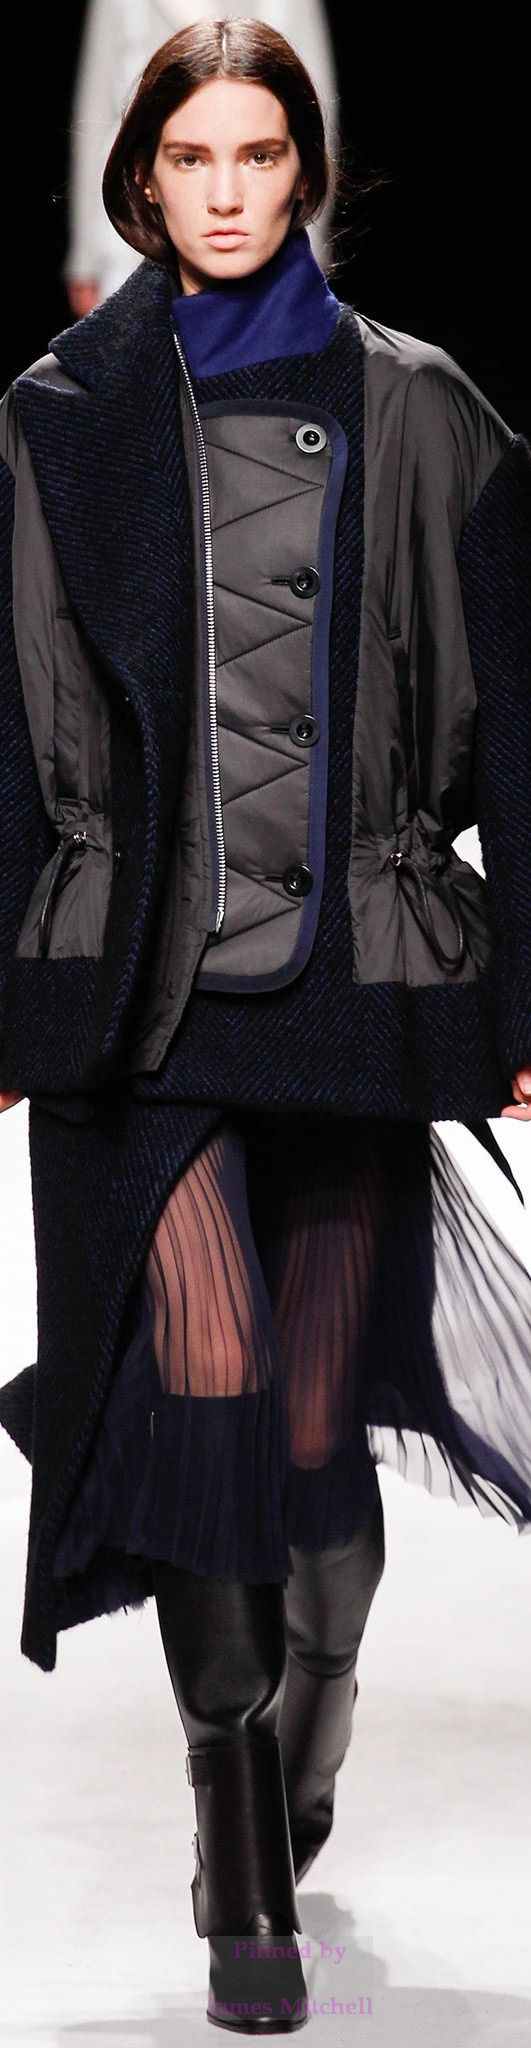 Sacai Collection Fall 2014 Ready to Wear